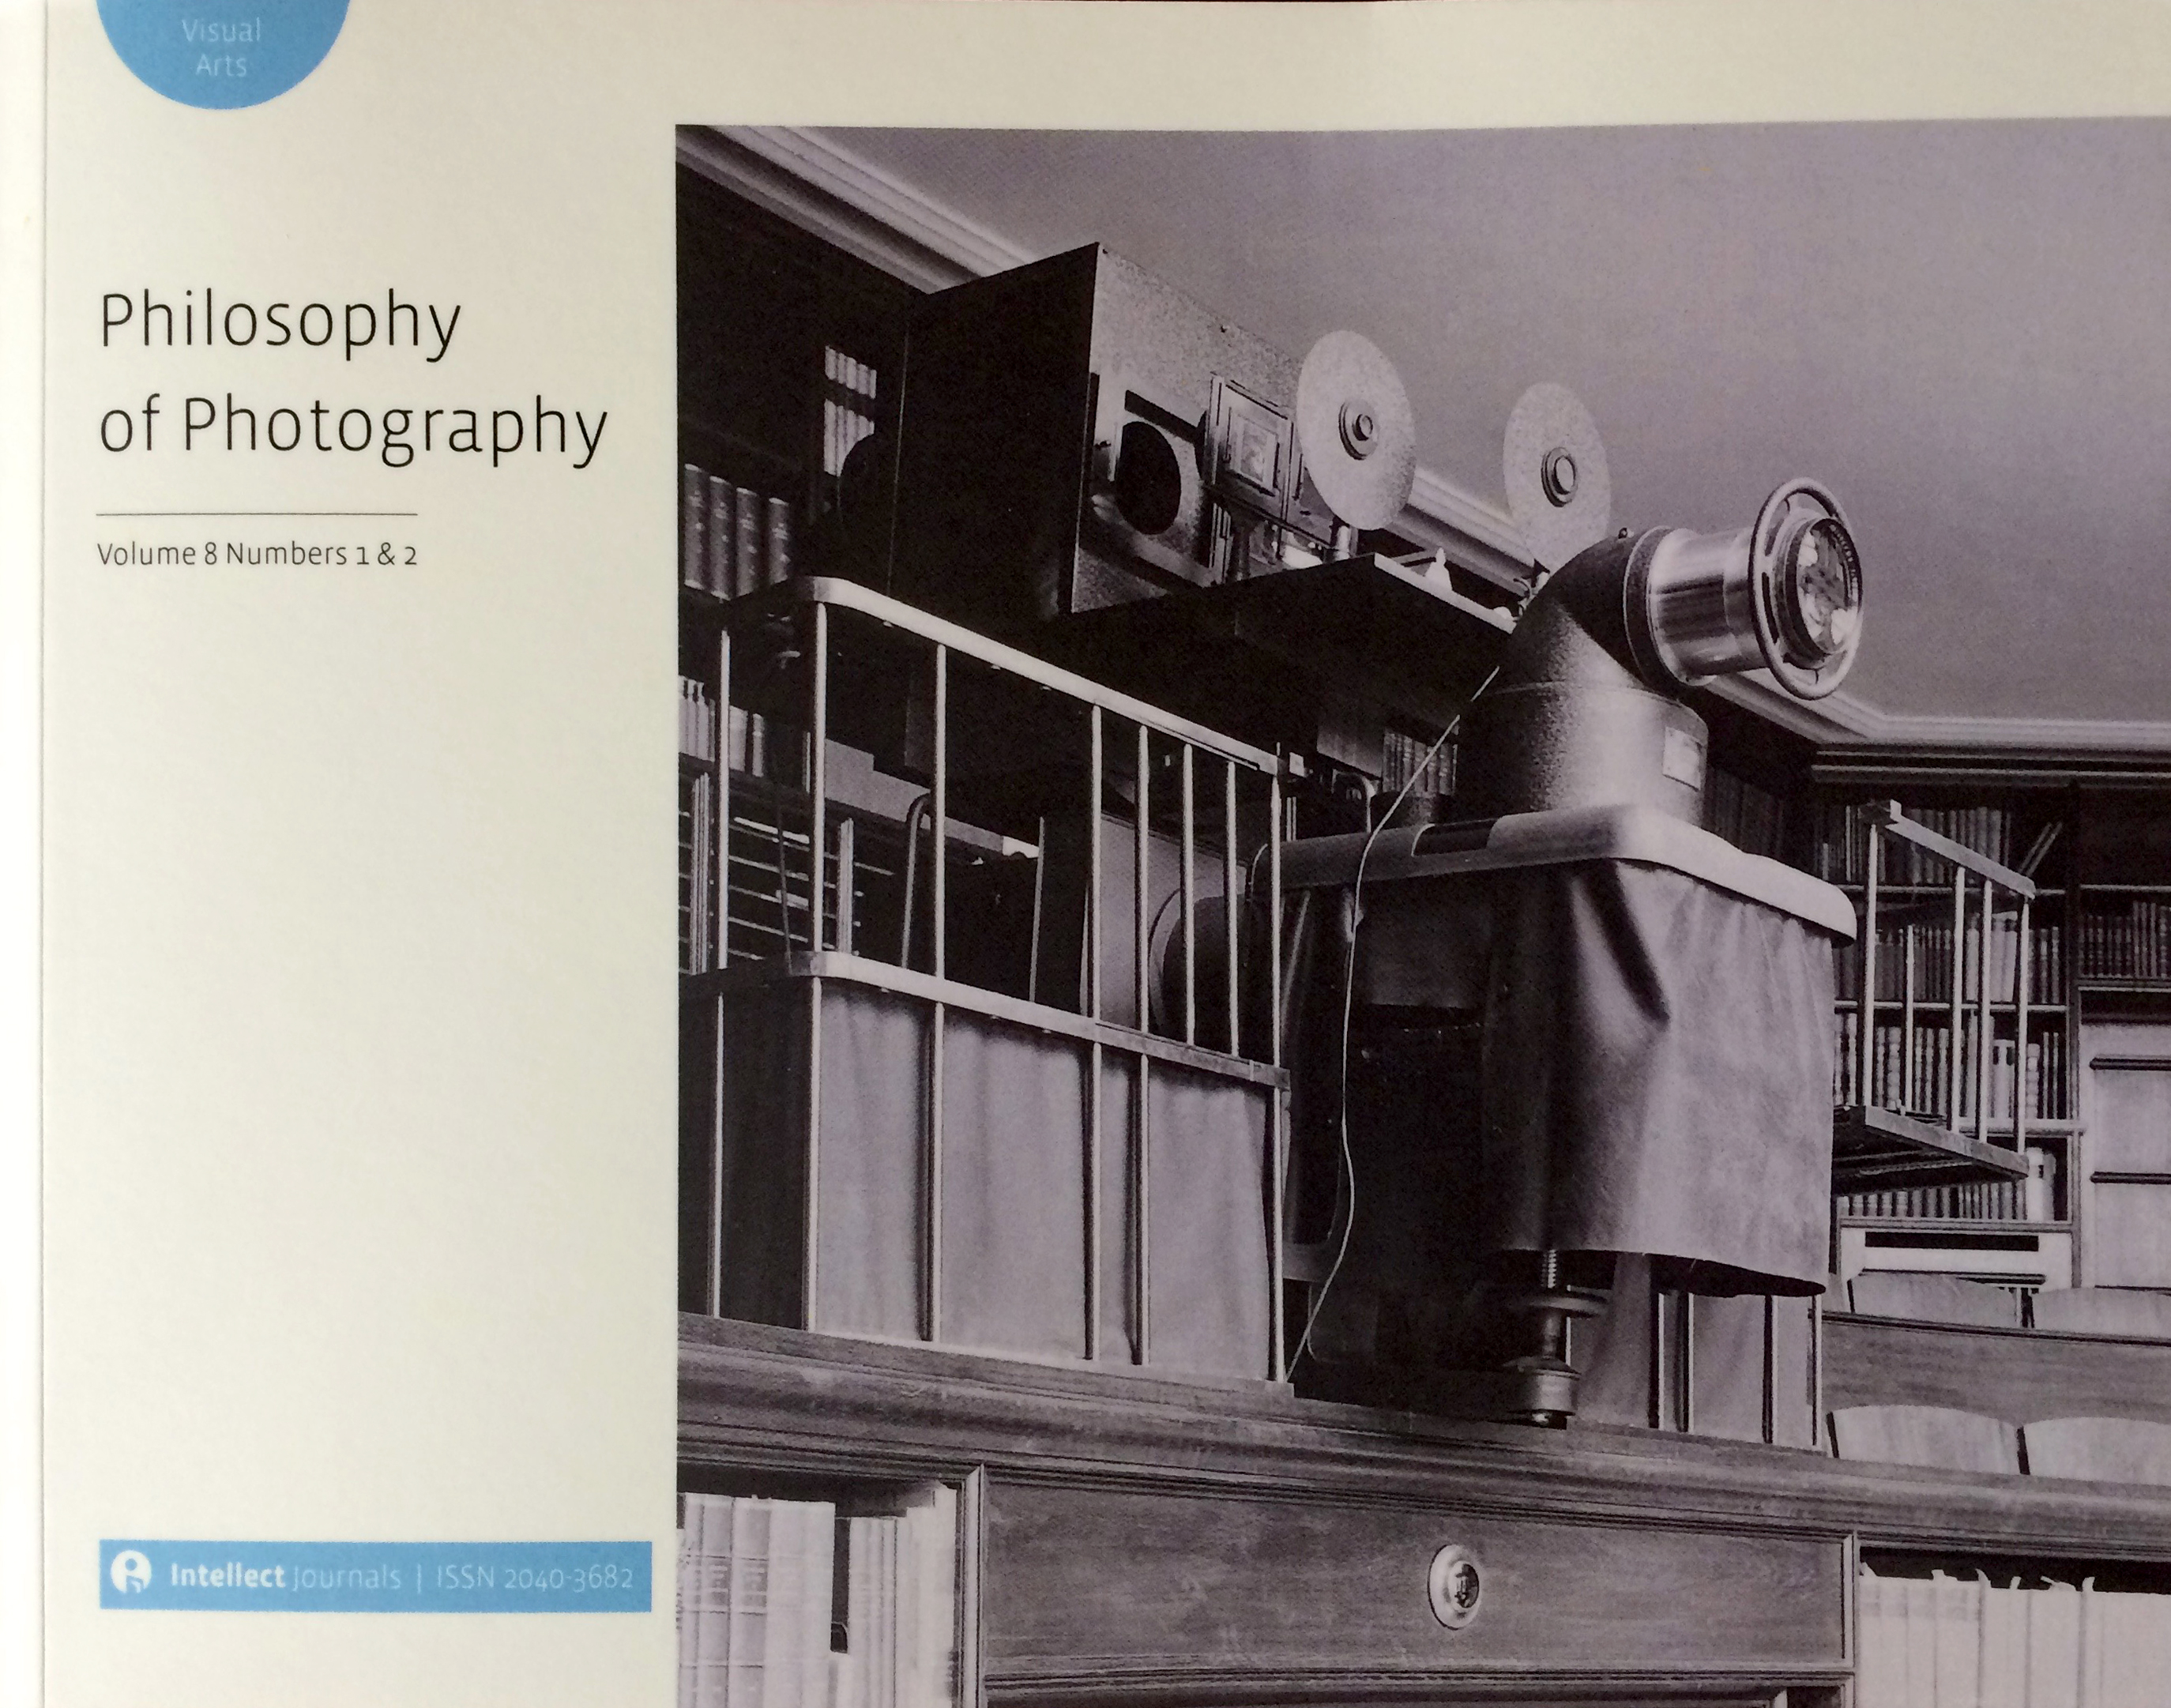 Philosophy of Photography 8.1-2